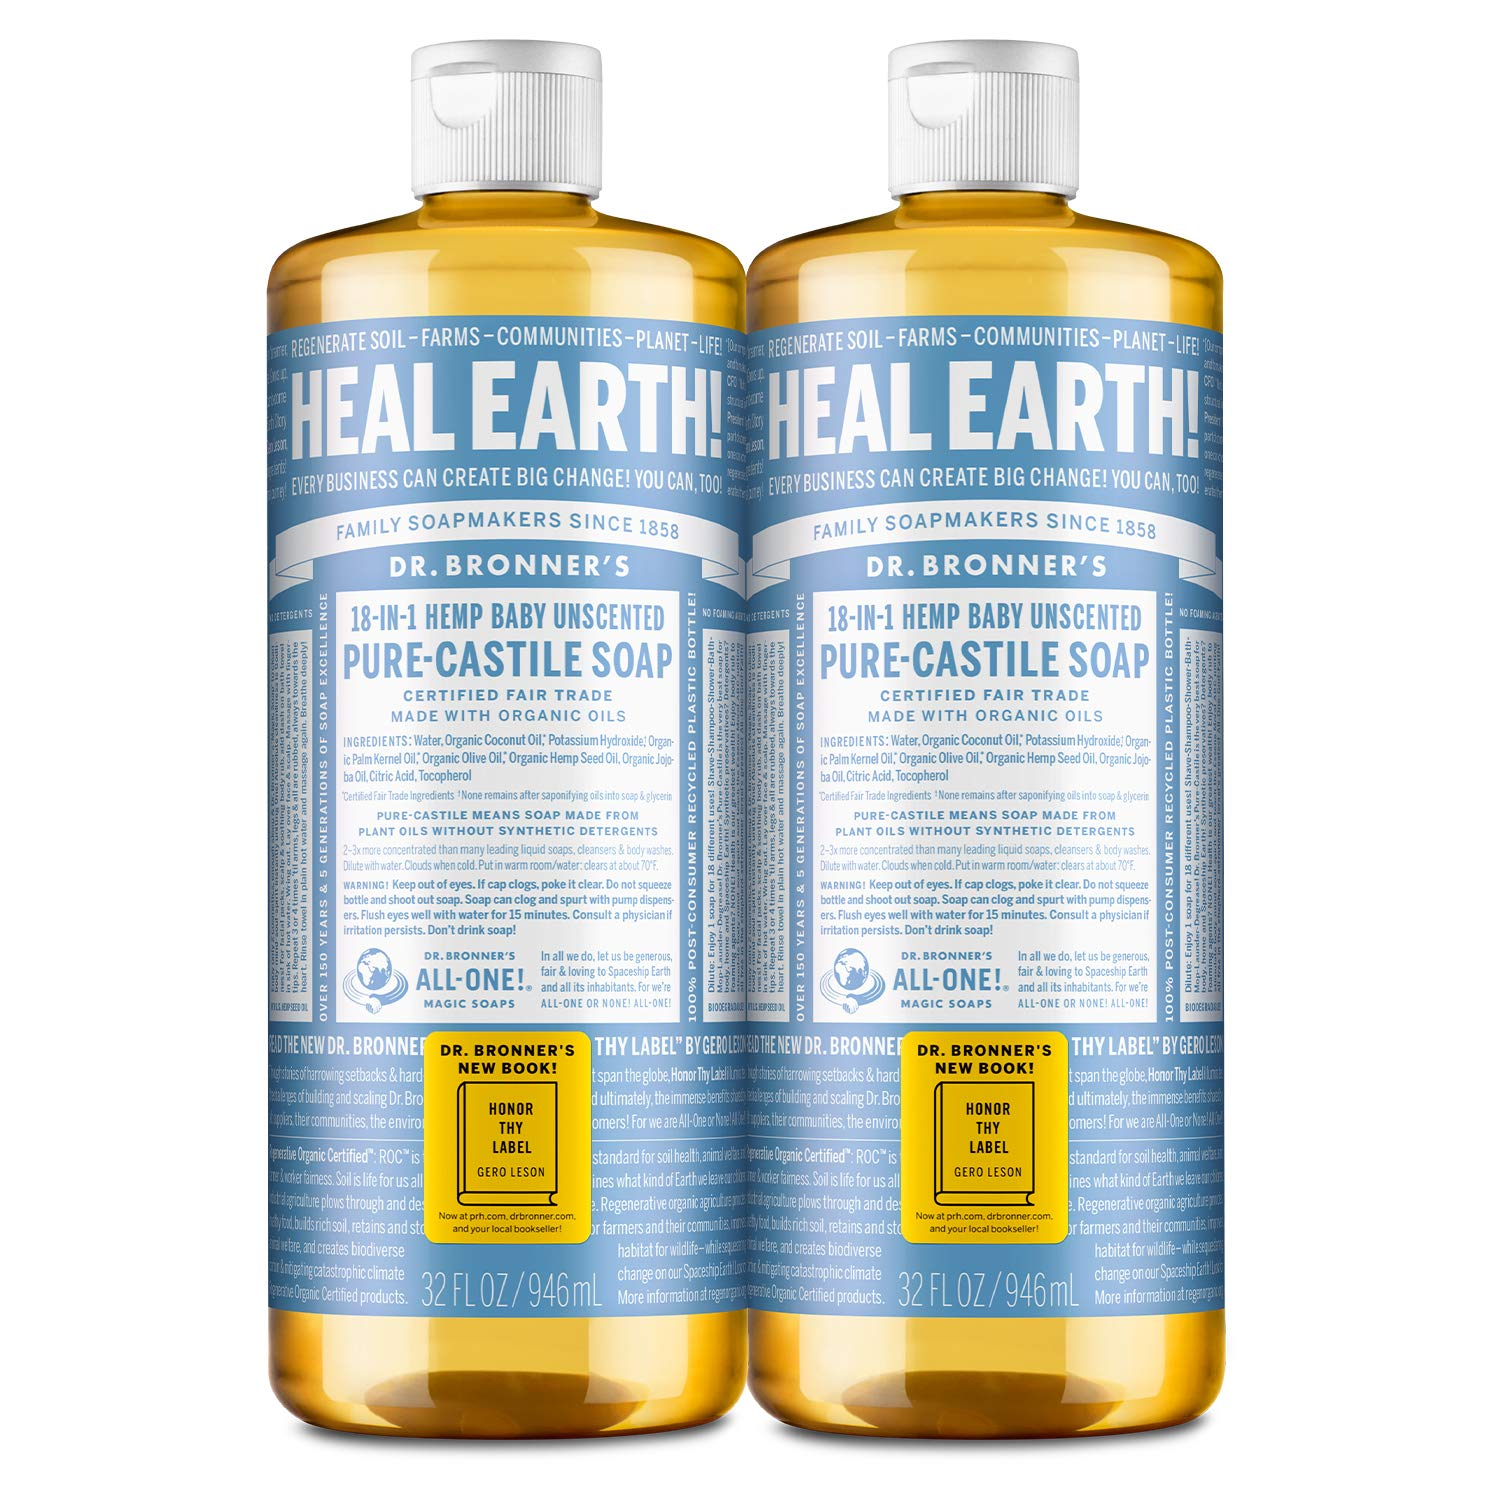 Dr. Bronner's - Pure-Castile Liquid Soap (Baby Unscented, 32 ounce, 2-Pack) - Made with Organic Oils, 18-in-1 Uses: Face, Hair, Laundry and Dishes, For Sensitive Skin and Babies, No Added Fragrance